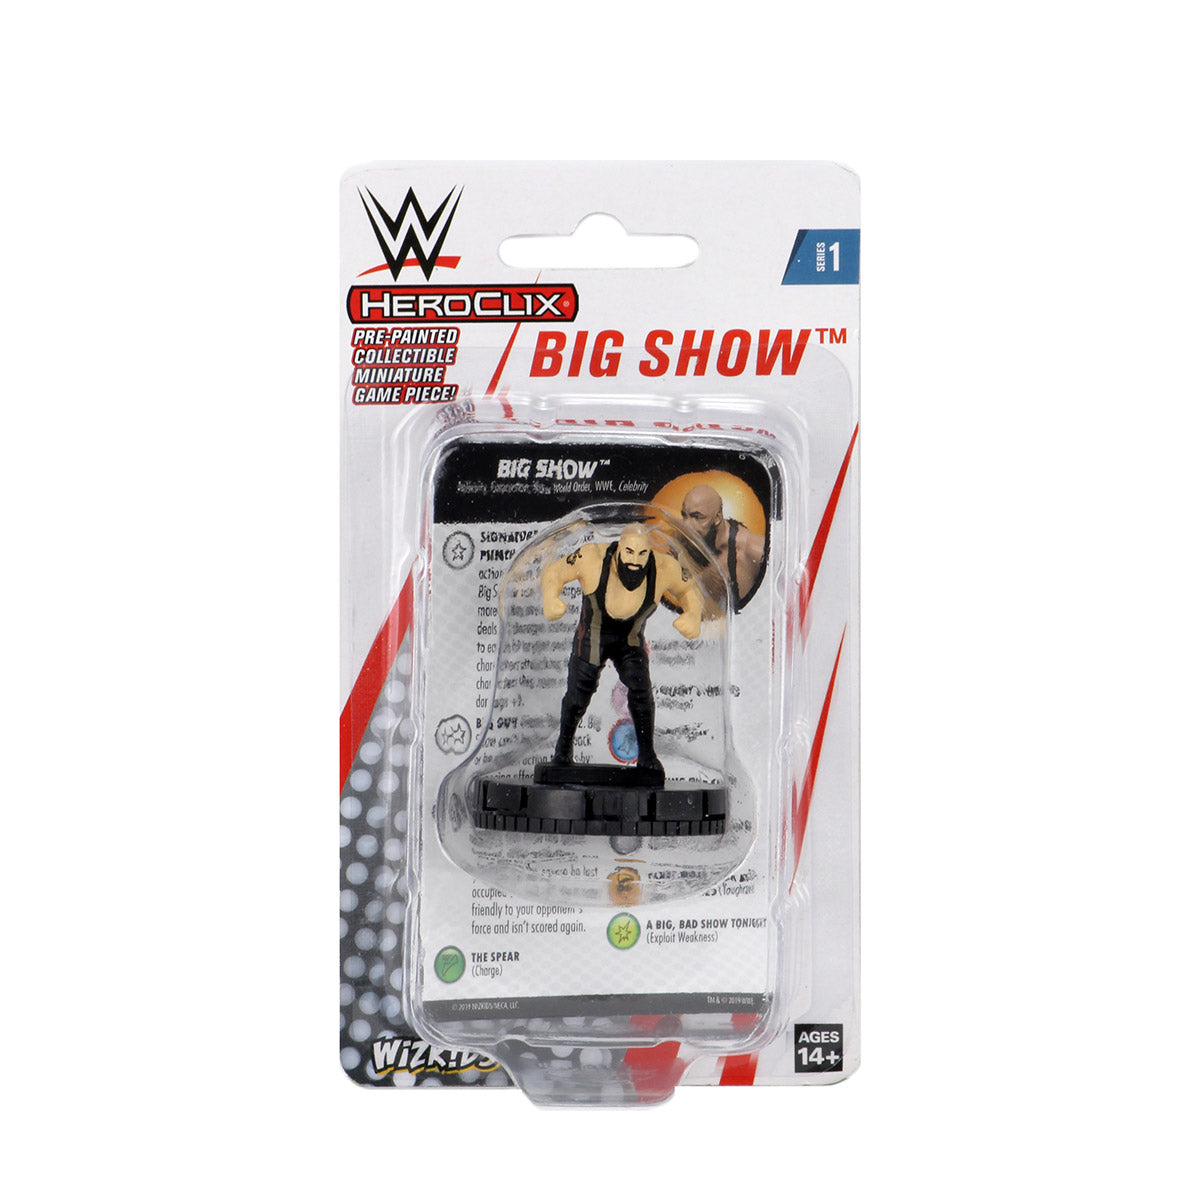 WWE HeroClix Big Show Expansion Pack Series 1 | Lvl Up Gaming UK